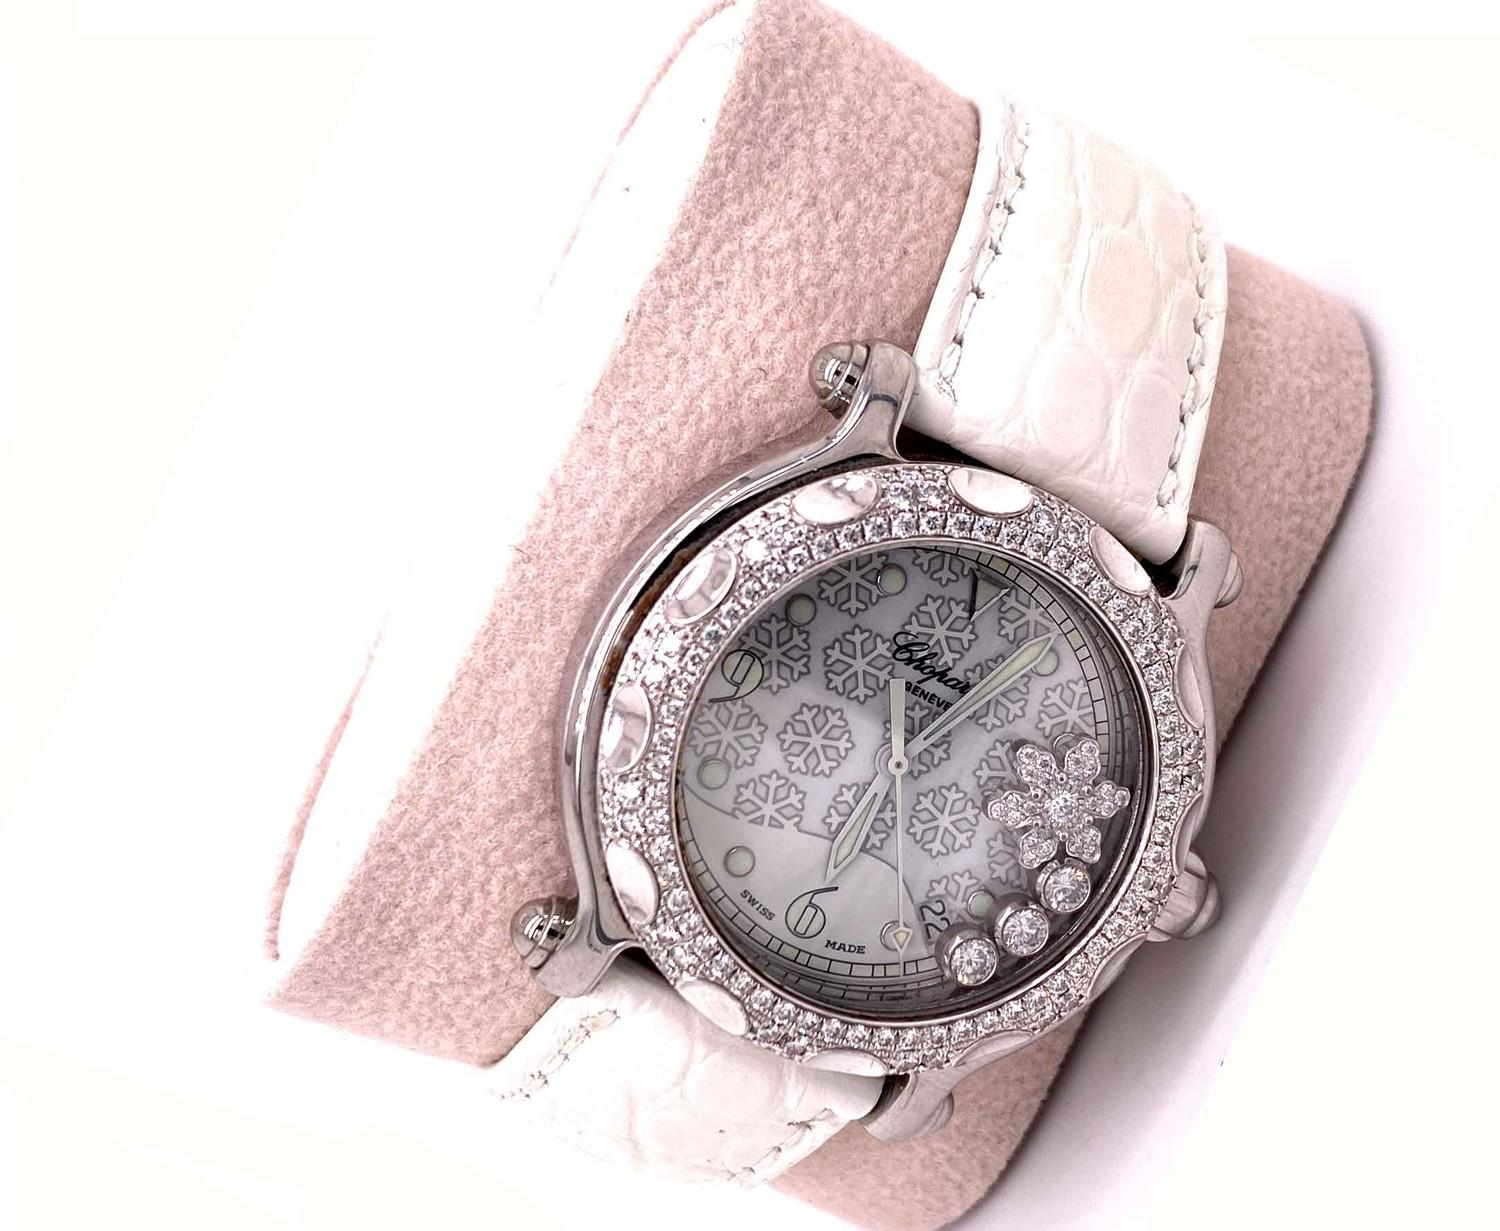 A Chopard Happy Sport Limited edition Diamond Snowflake ladies wristwatch 28/8946 mounted in 18ct - Image 5 of 7